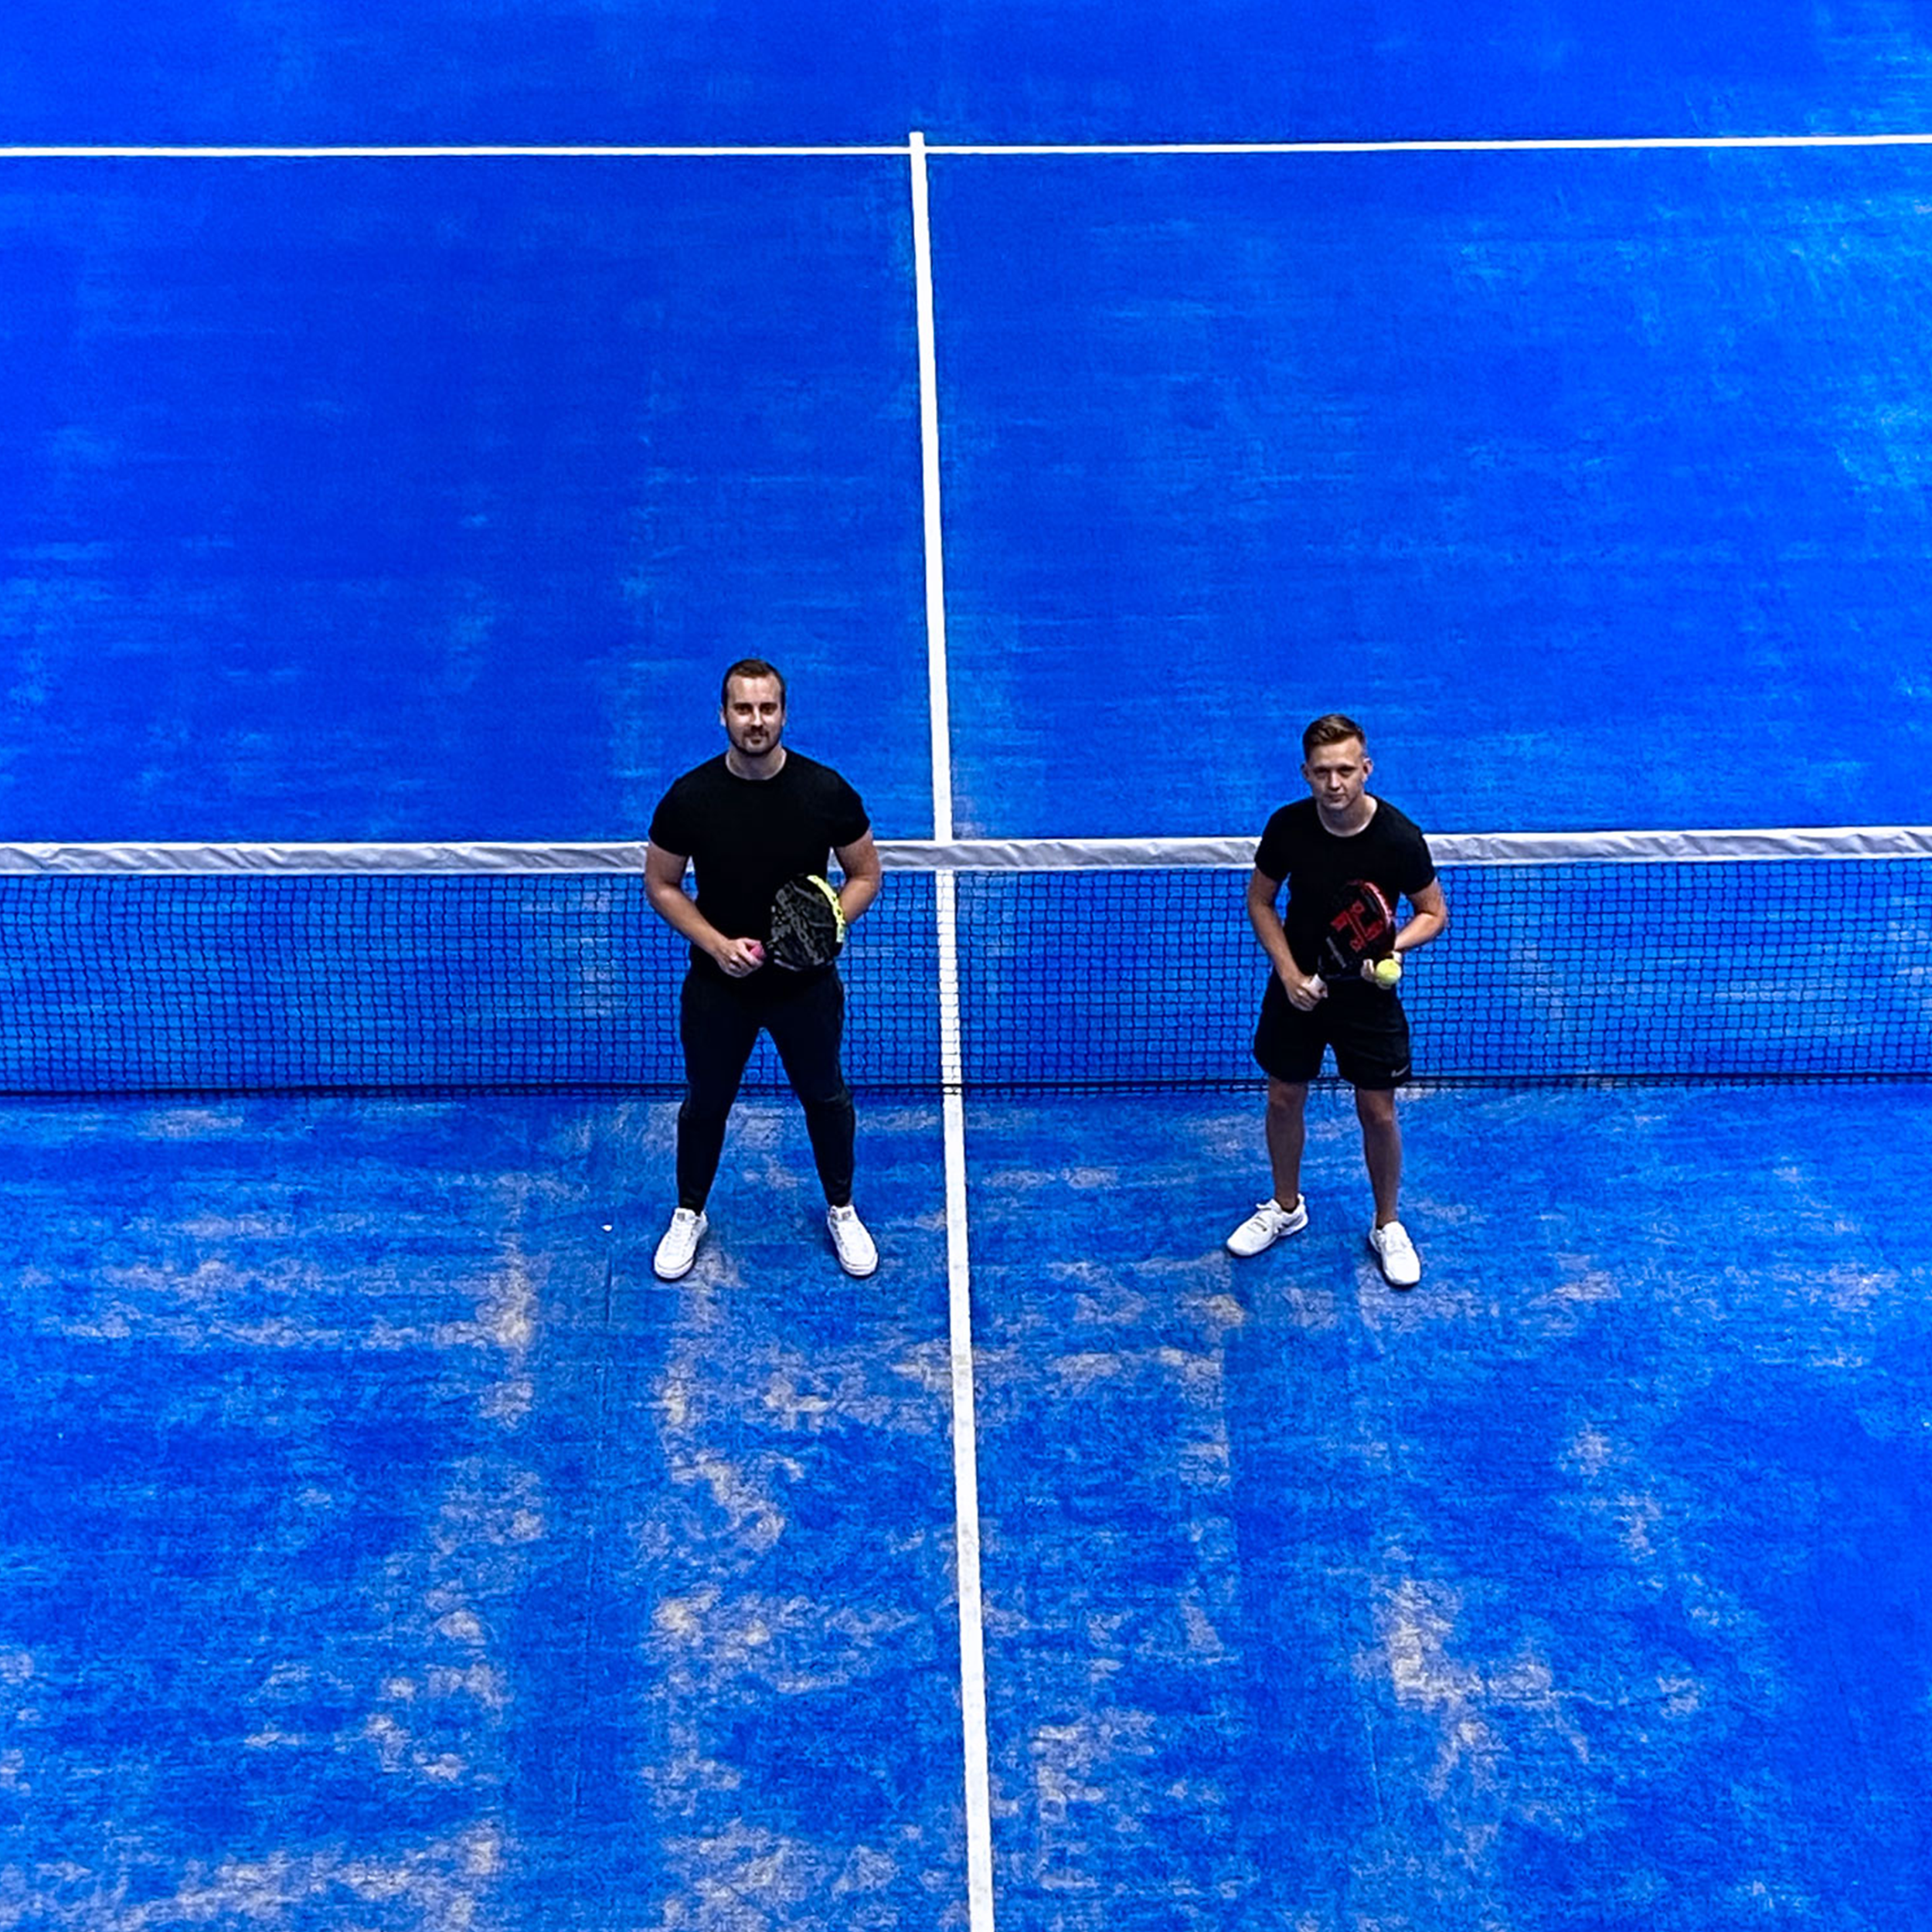 Two men on a blue padel court